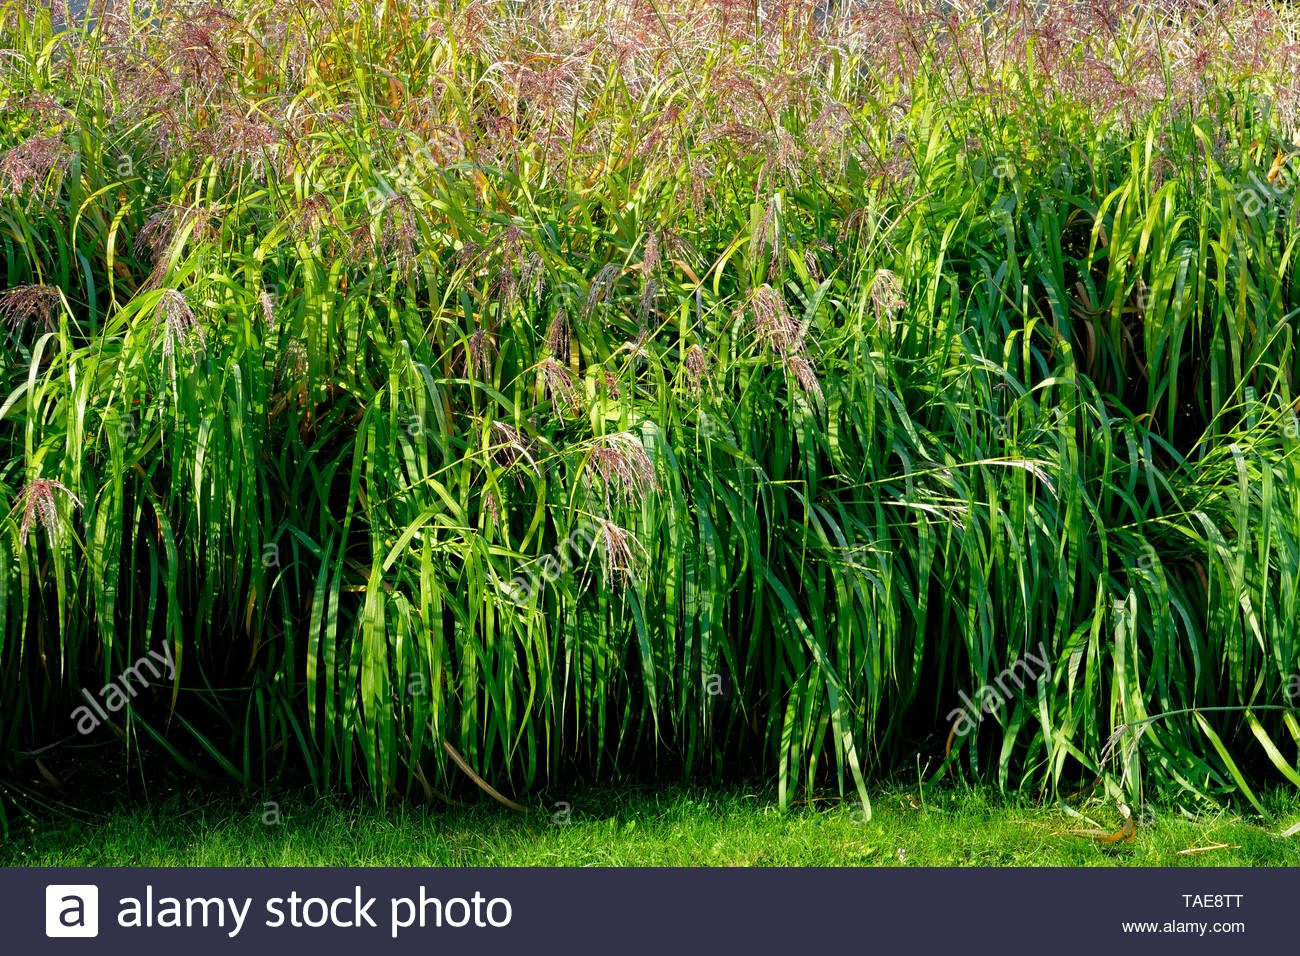 Miscanthus (Miscanthus sinensis) on the grass of the garden; variety 'Silberfeder'; (Suzanne's vegetable garden; Le Pas; Mayenne; Pays de la Loire; France). - Stock Image